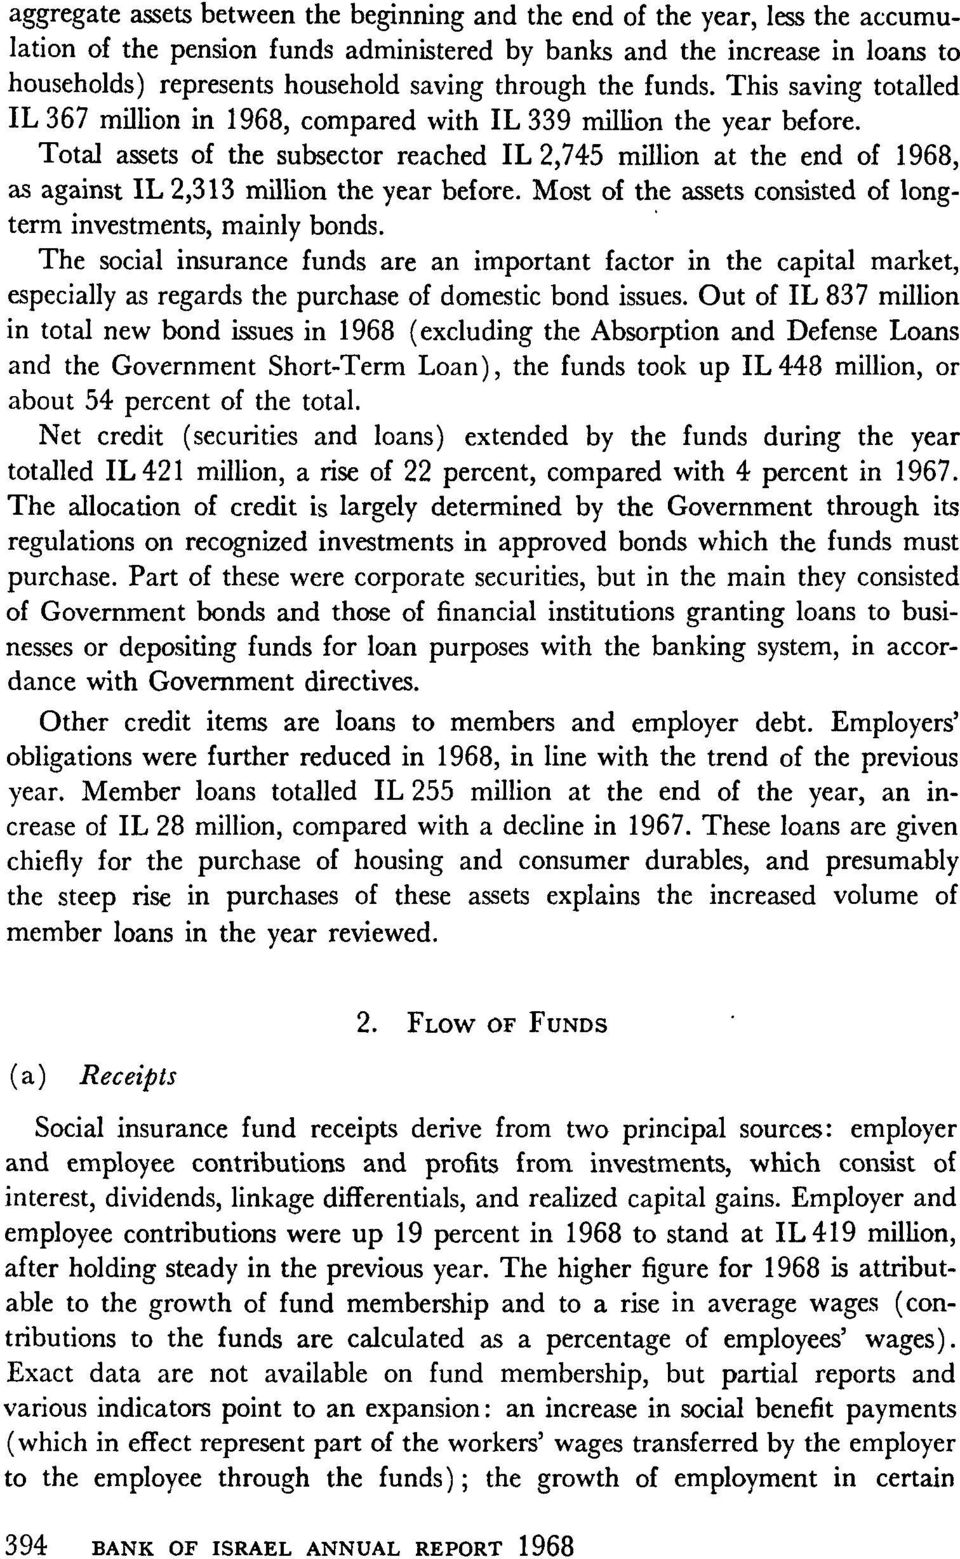 assets of the subsector reached IL 2,745 million at the end of 1968, as against IL 2,313 million the year before. Most of the assets consisted of longterm investments, mainly bonds.